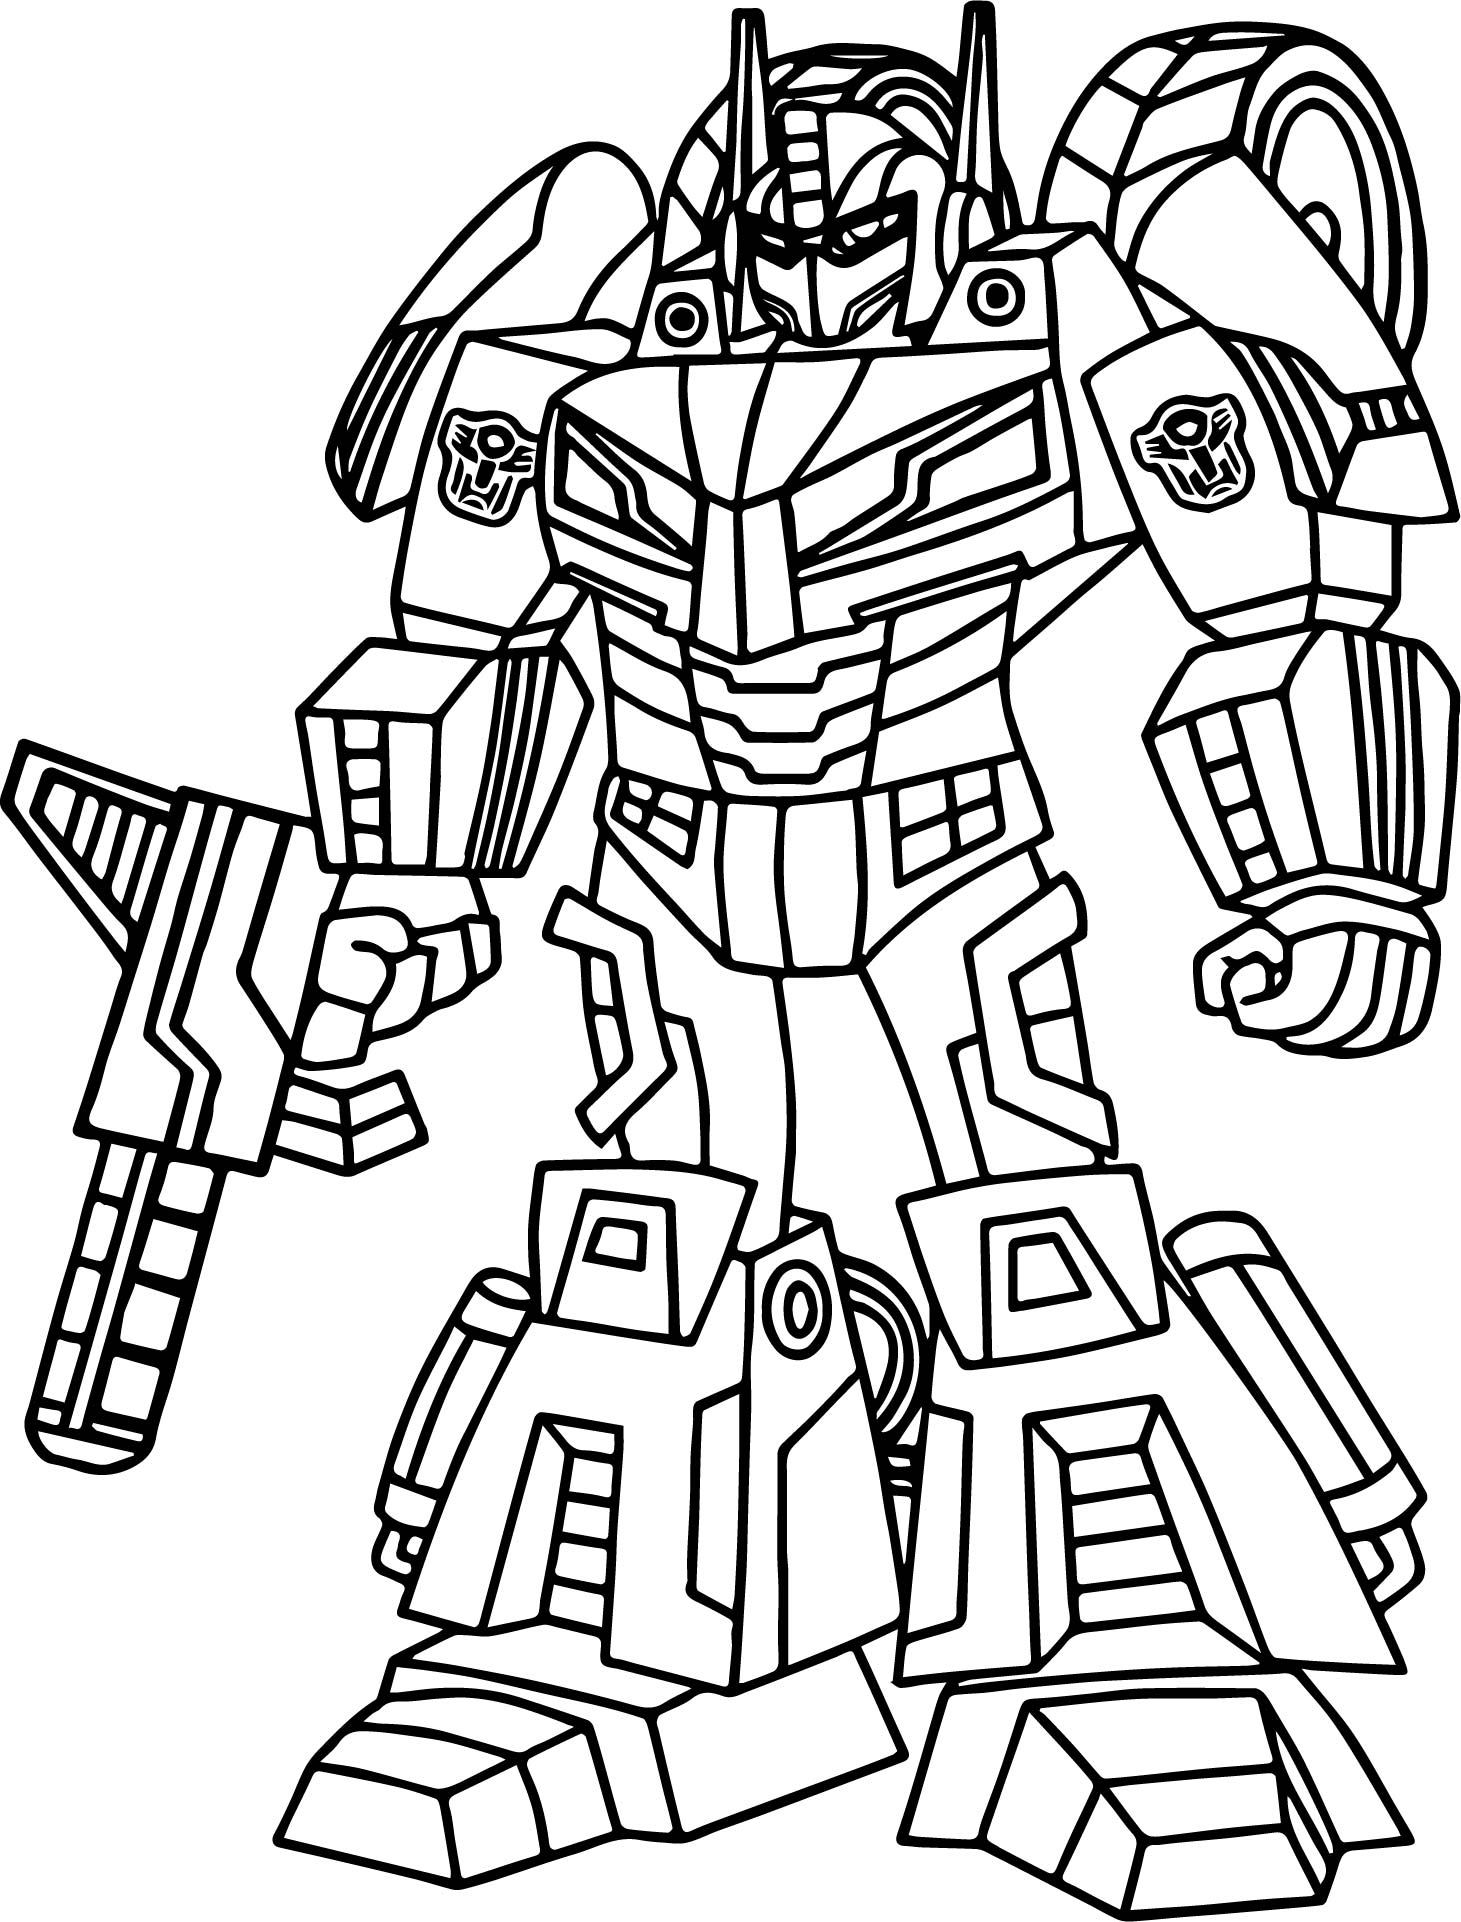 coloring transformers print download inviting kids to do the transformers coloring transformers 1 1